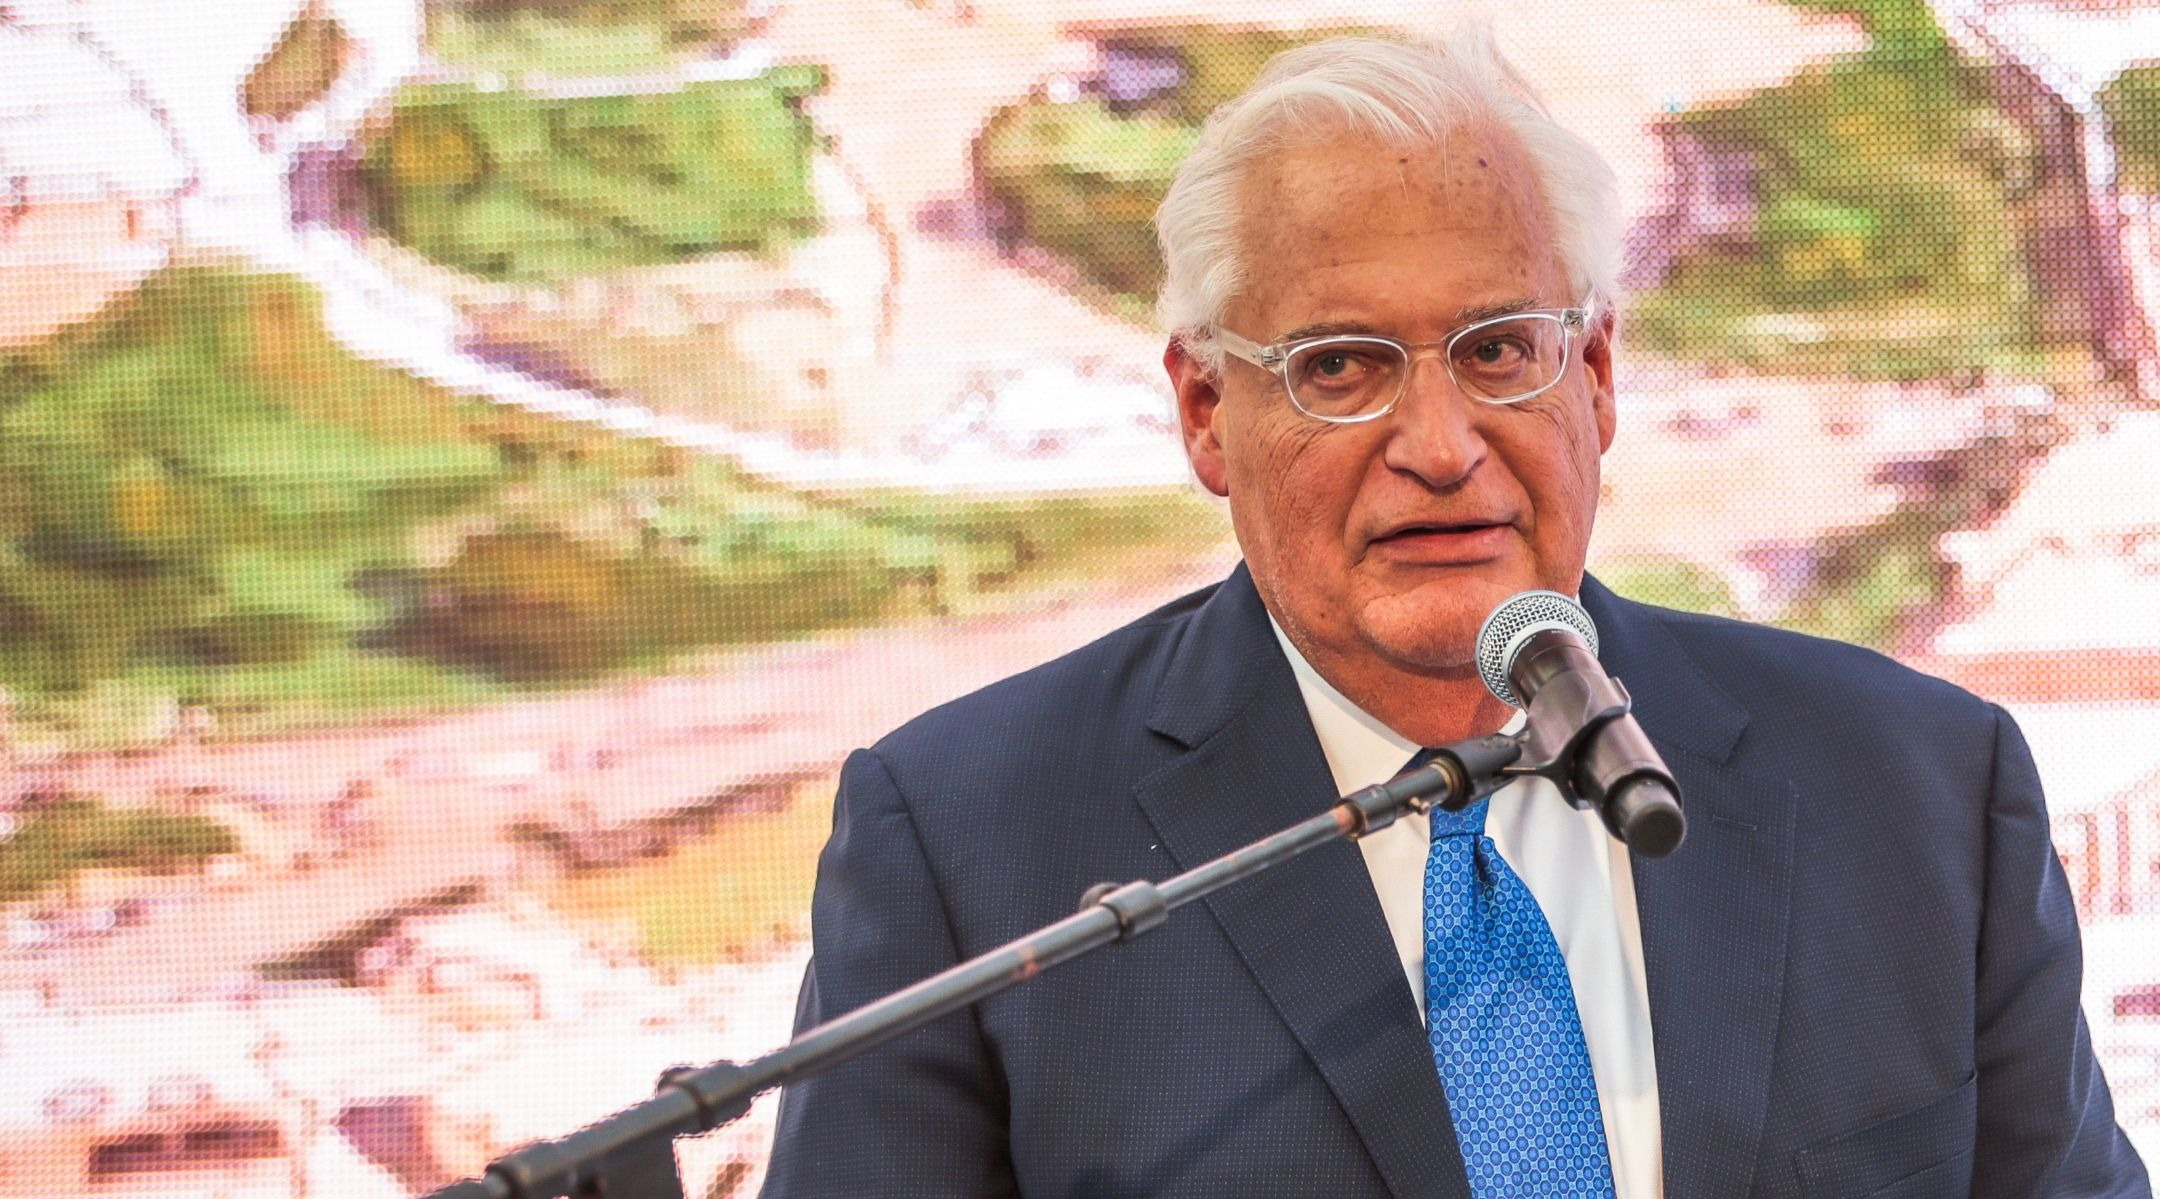 US Ambassador to Israel David Friedman says Jewish illiteracy is greatest threat to Diaspora Jewry